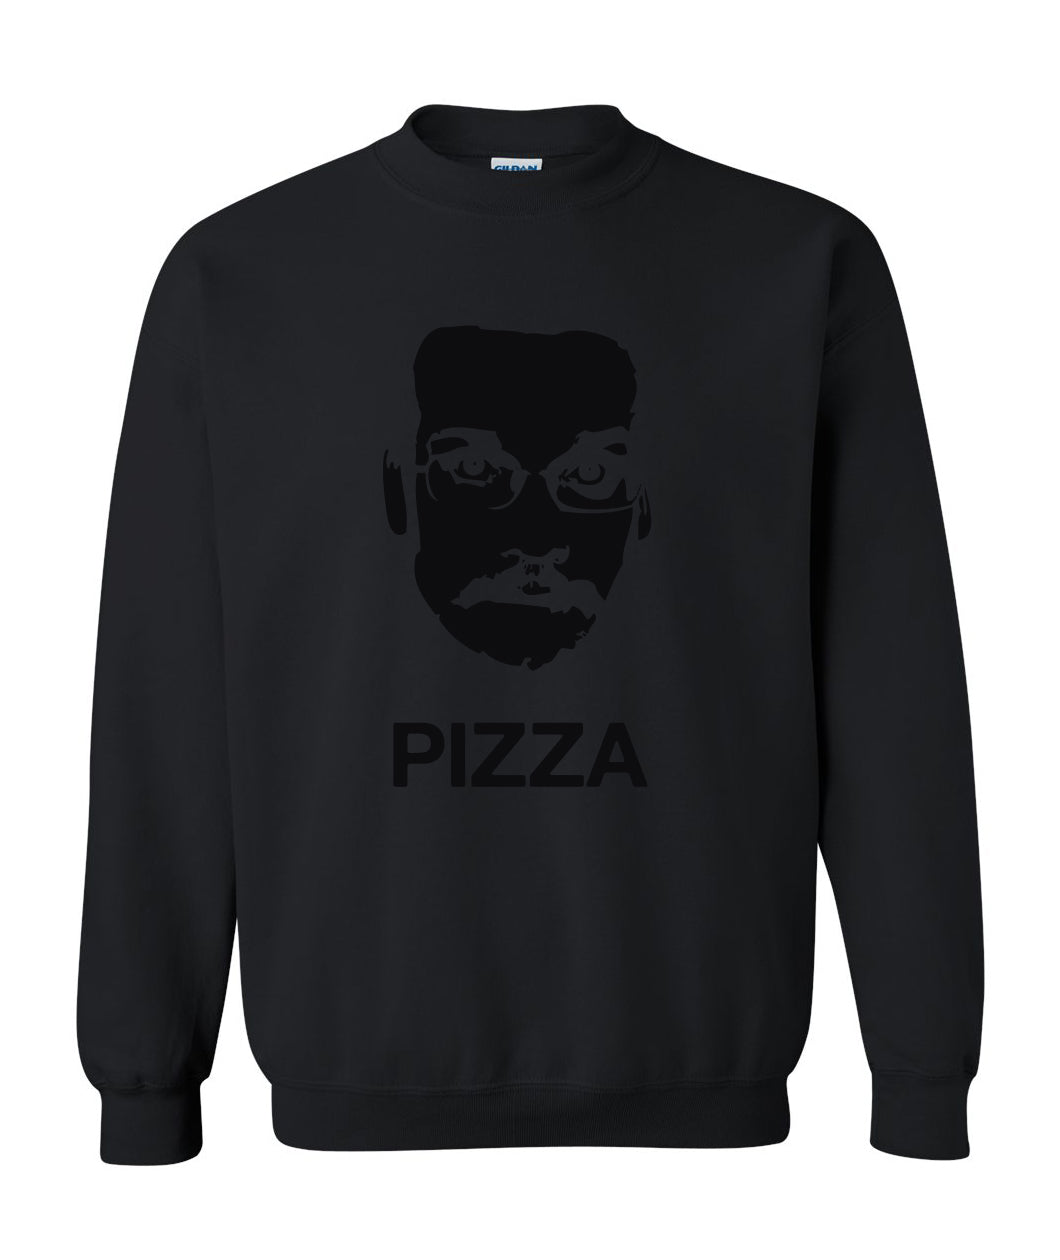 Burnt John Crew Neck Sweatshirt